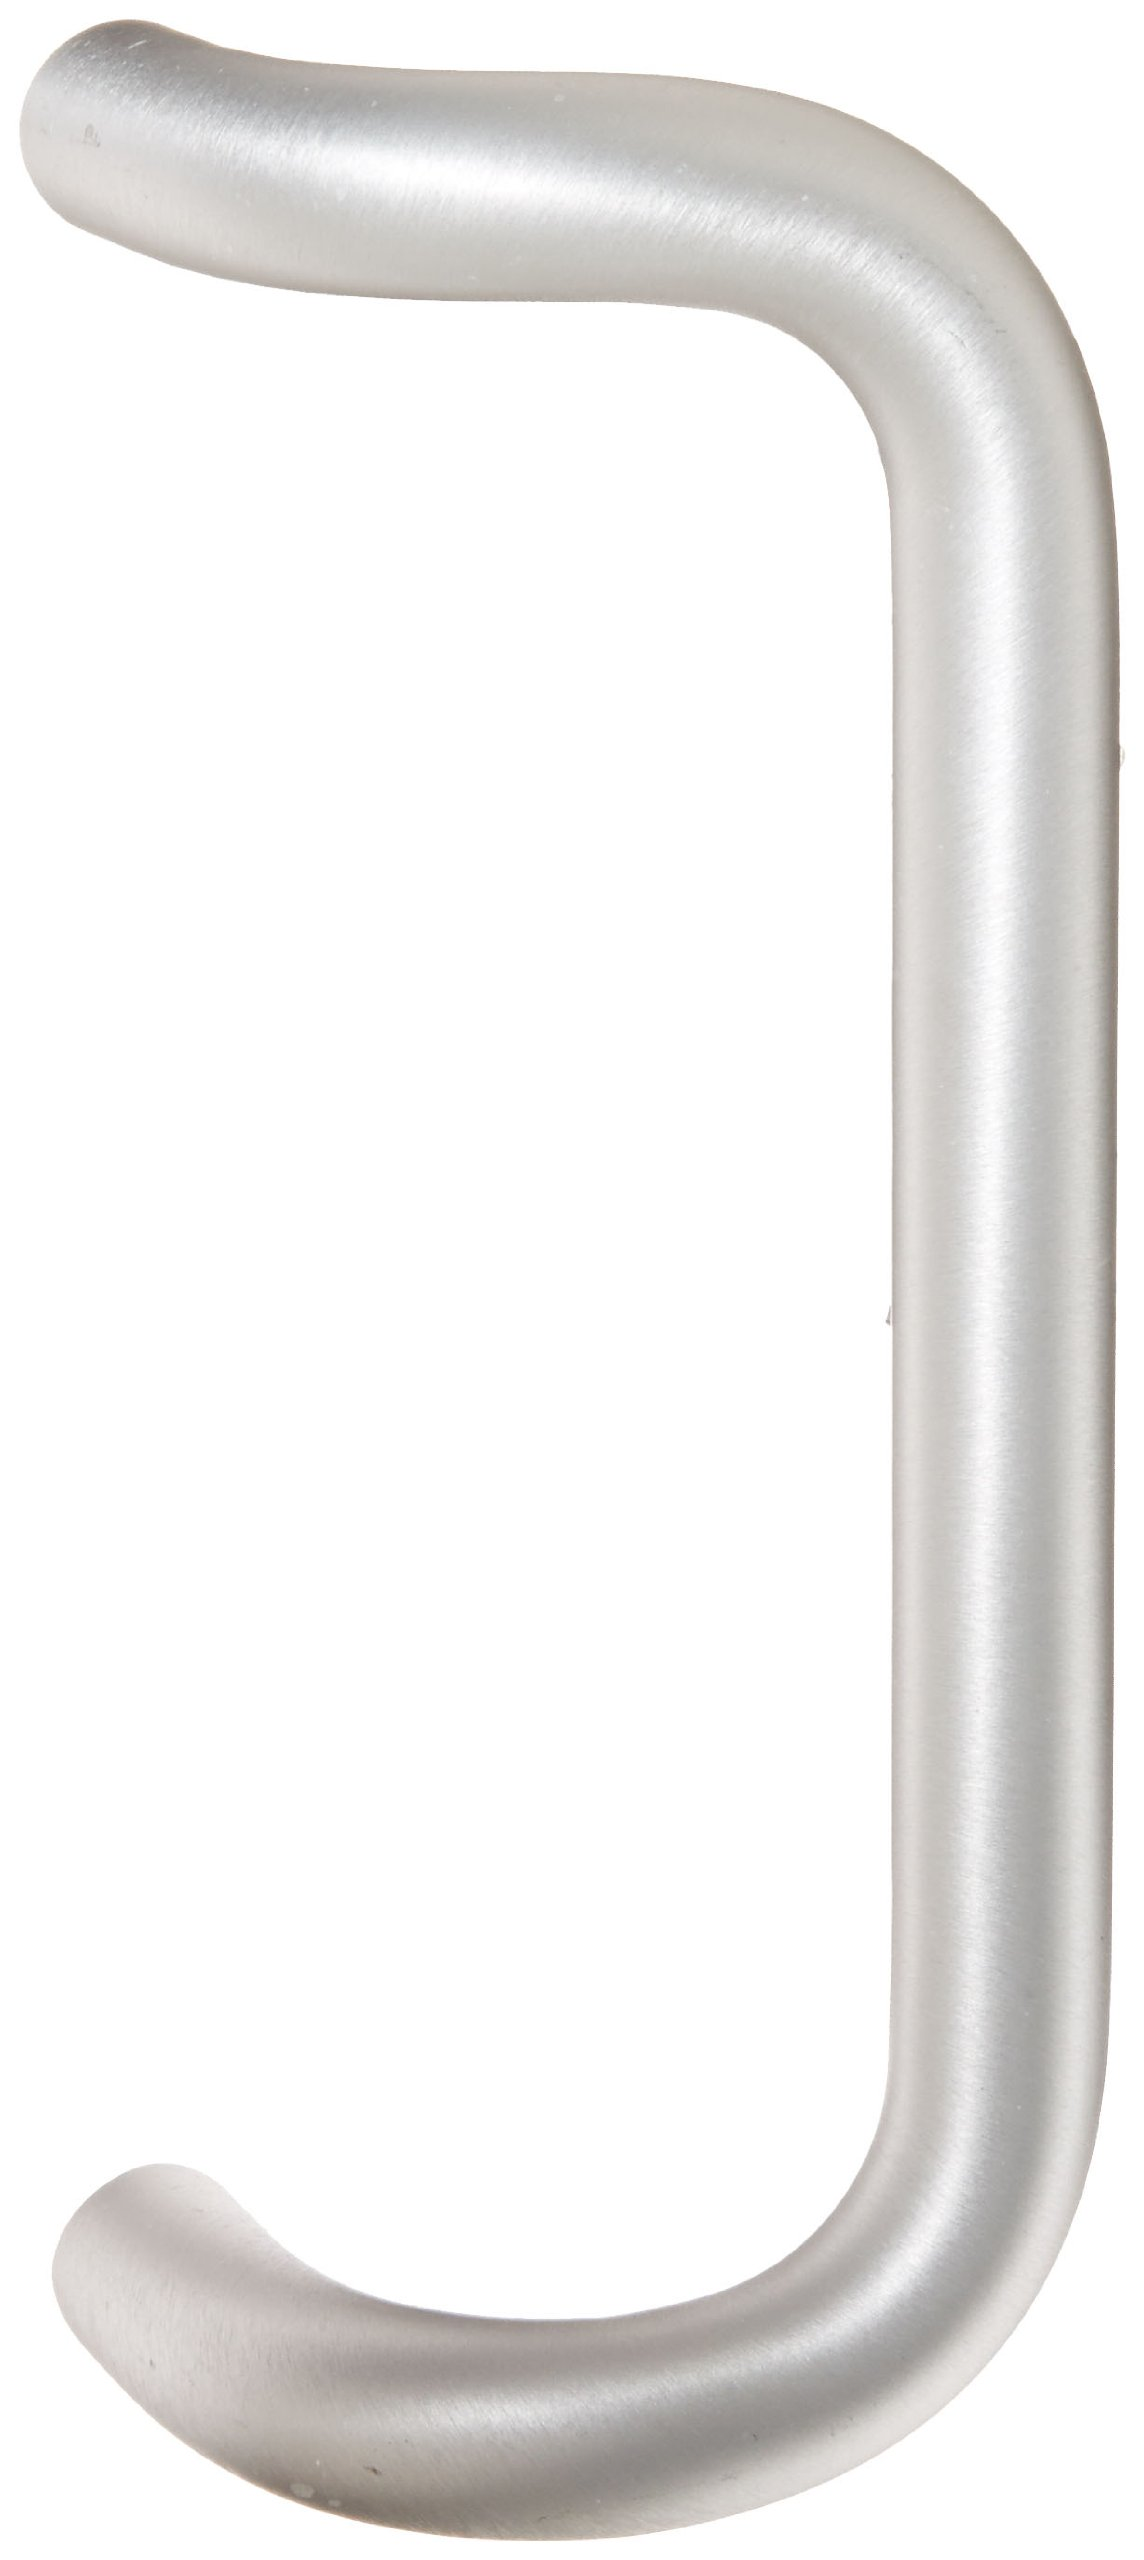 Rockwood BF157.28 Aluminum 90-Degree Offset Door Pull, 1'' Diameter x 10'' Center-to-Center, Through Bolt Mounting for 1-3/4'' Door, Clear Anodized Finish